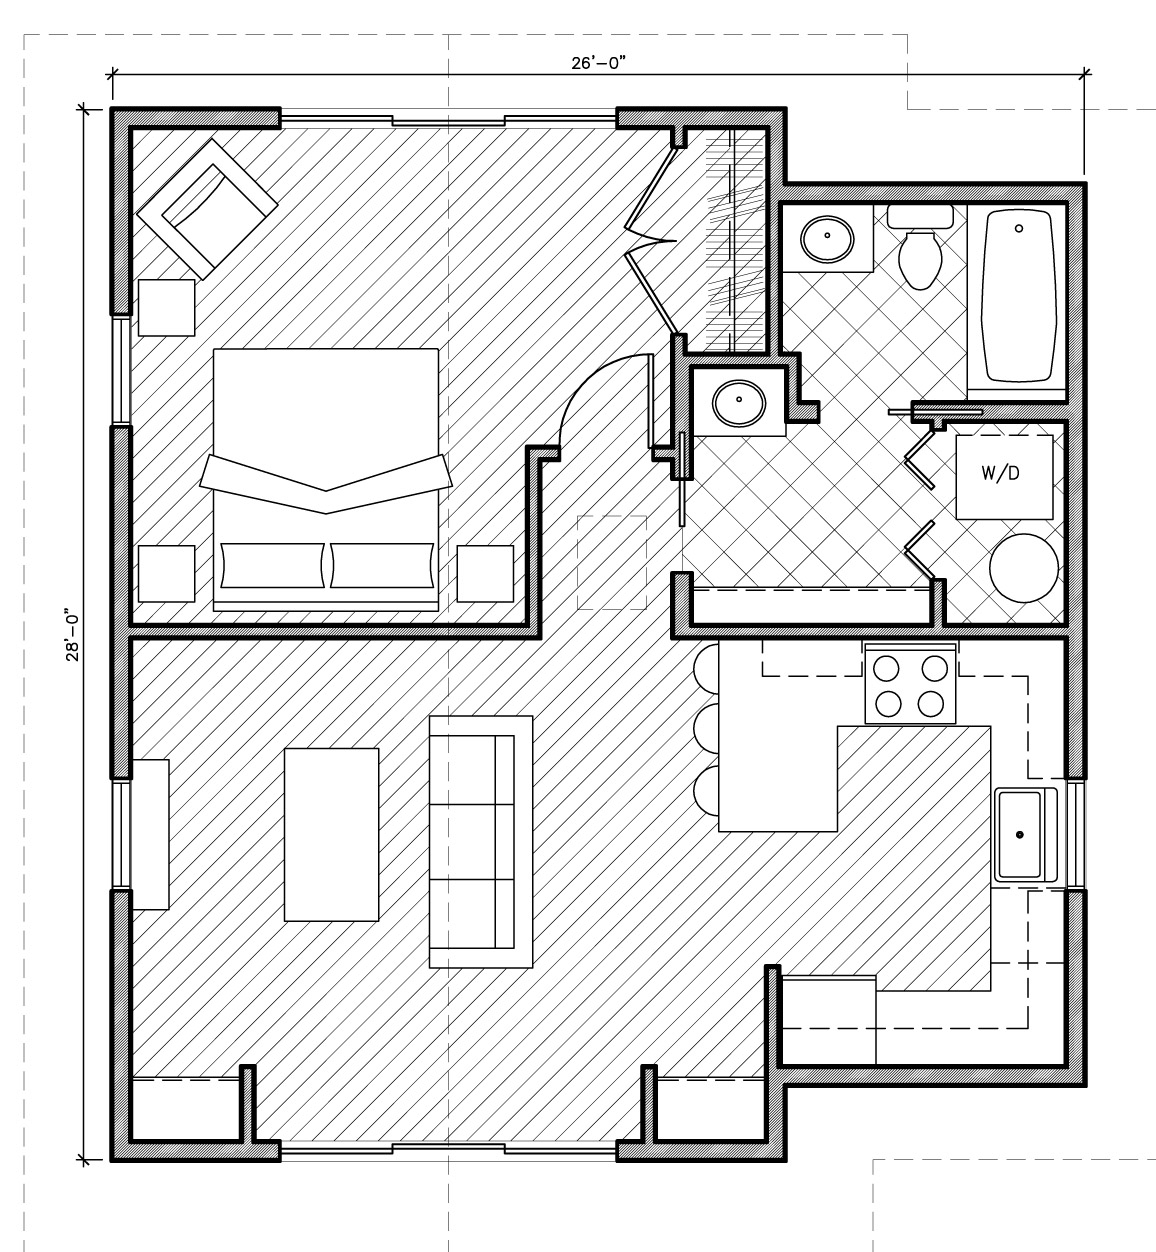 1 bedroom cottage plans house plans home designs Simple cottage floor plans